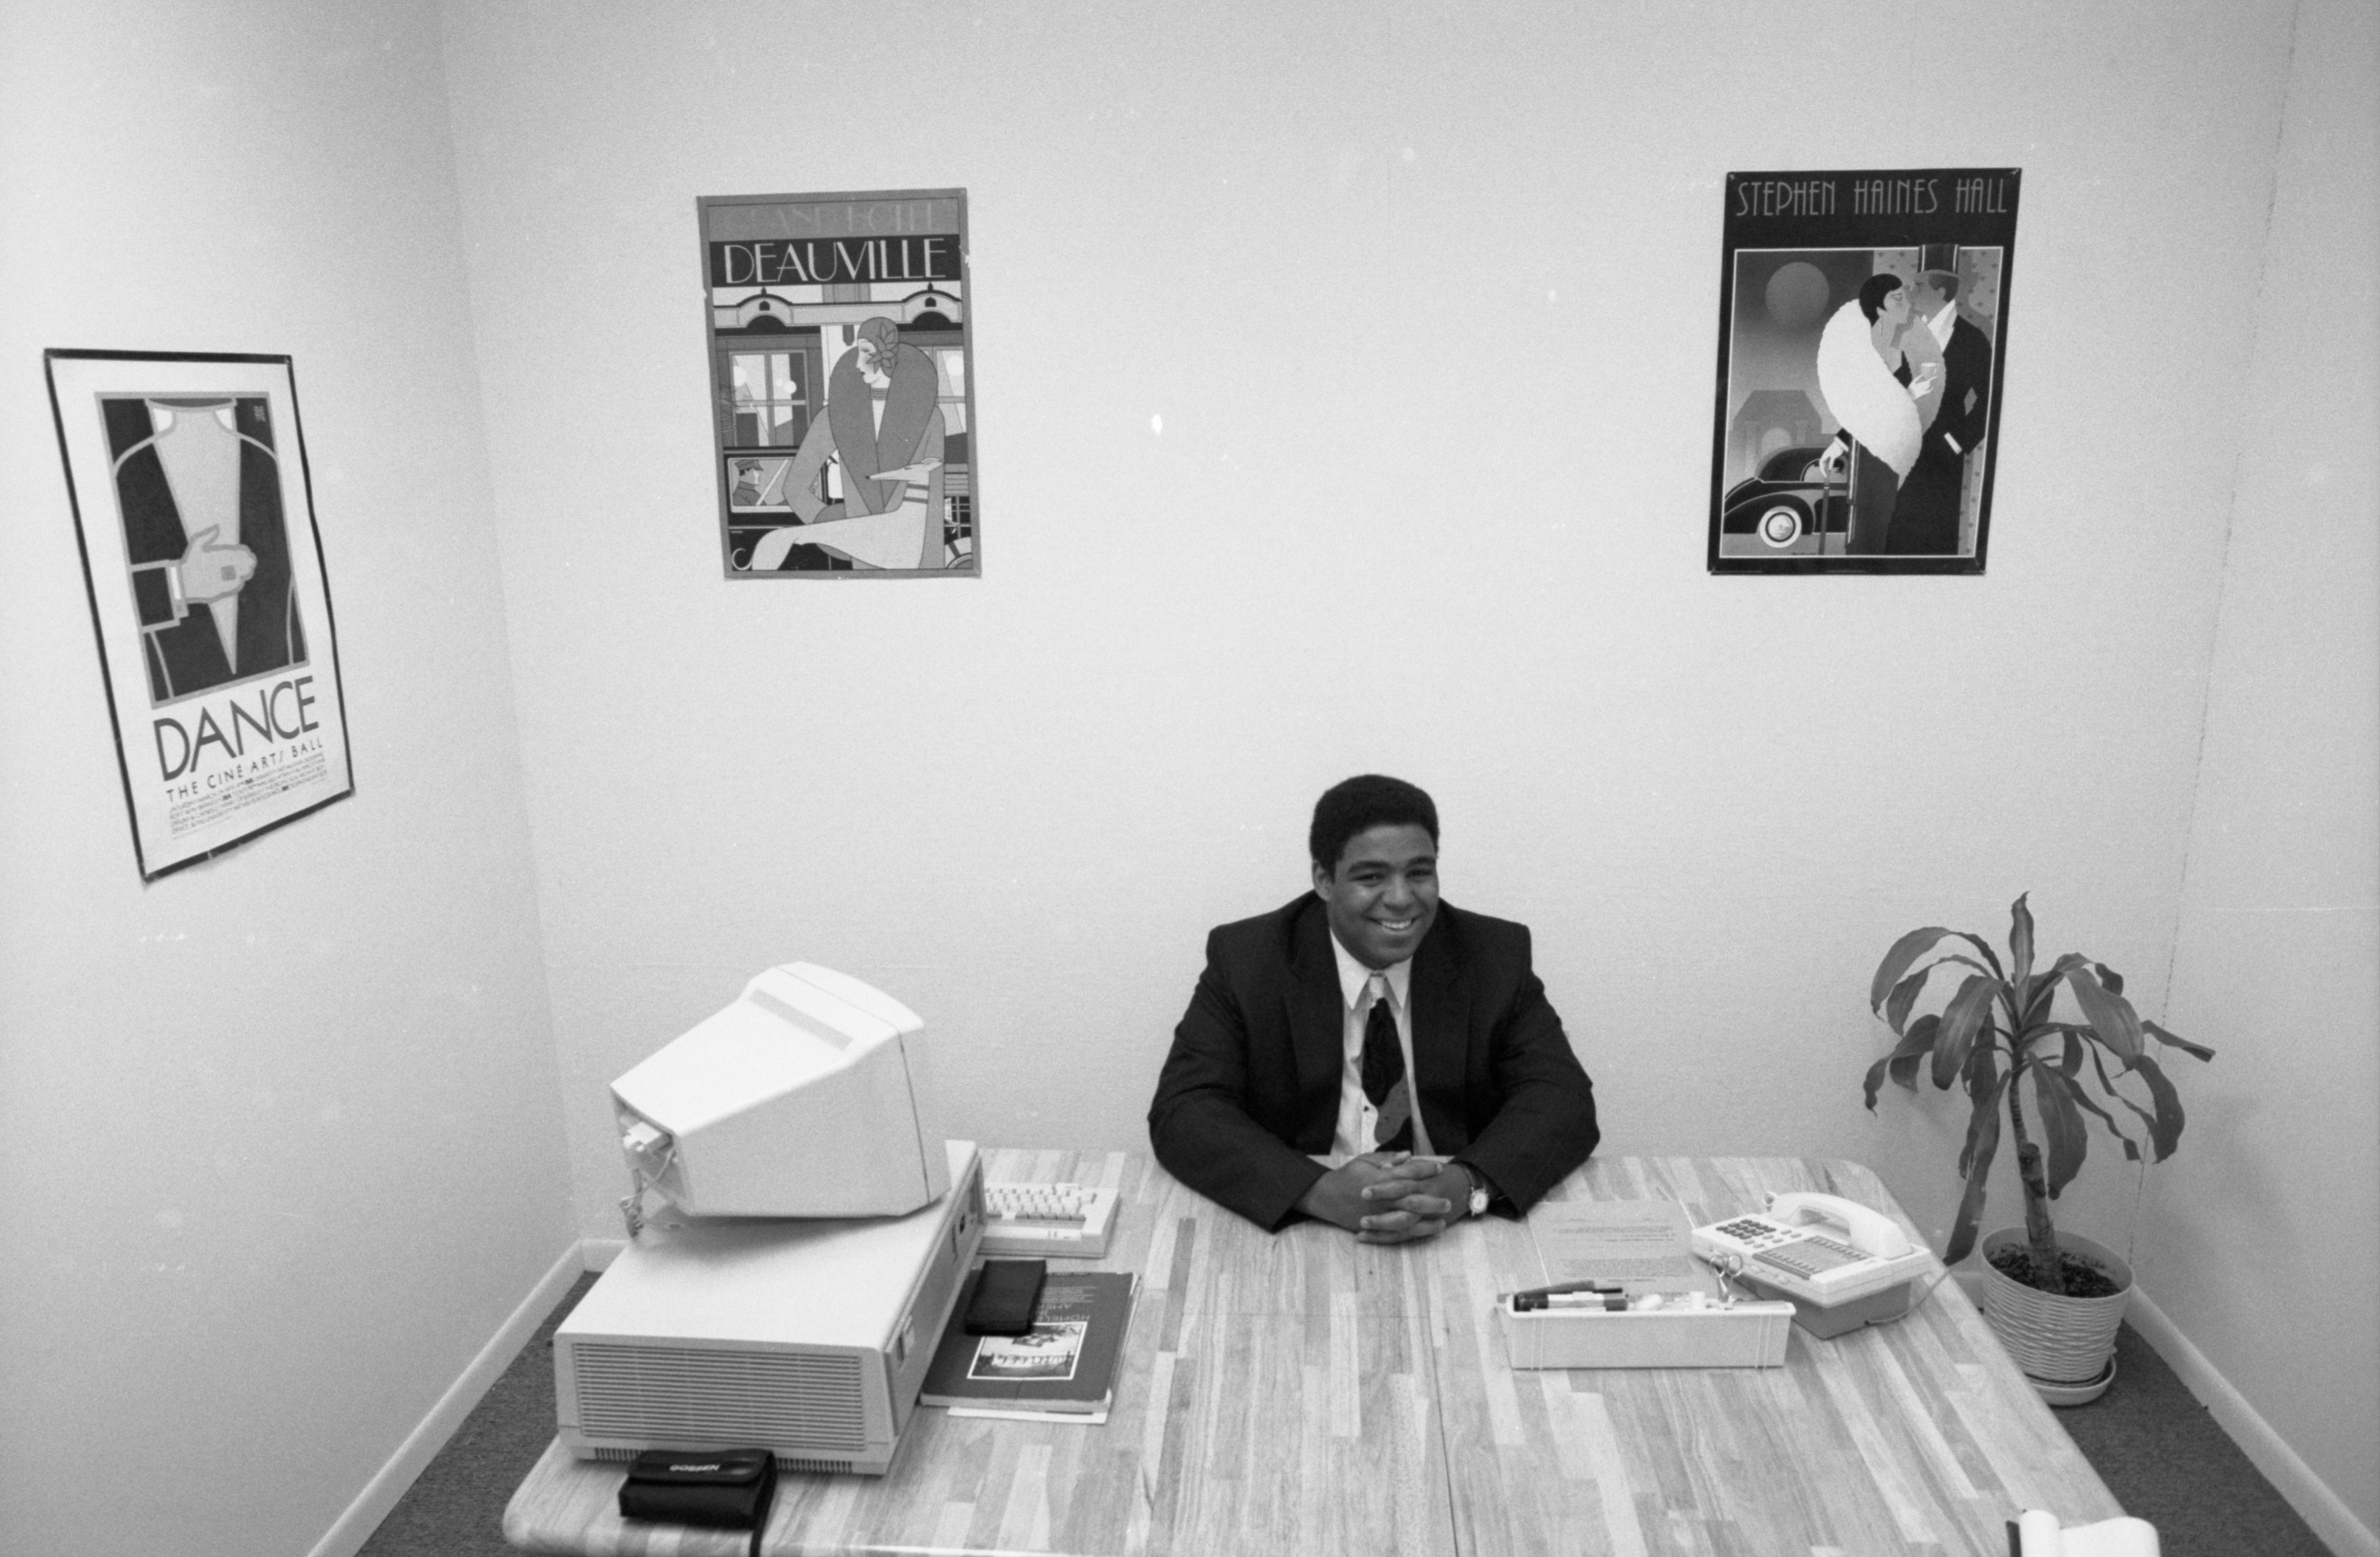 Aaron P Dworkin, Jumpstart Founder, At His Desk, August 16, 1992 image